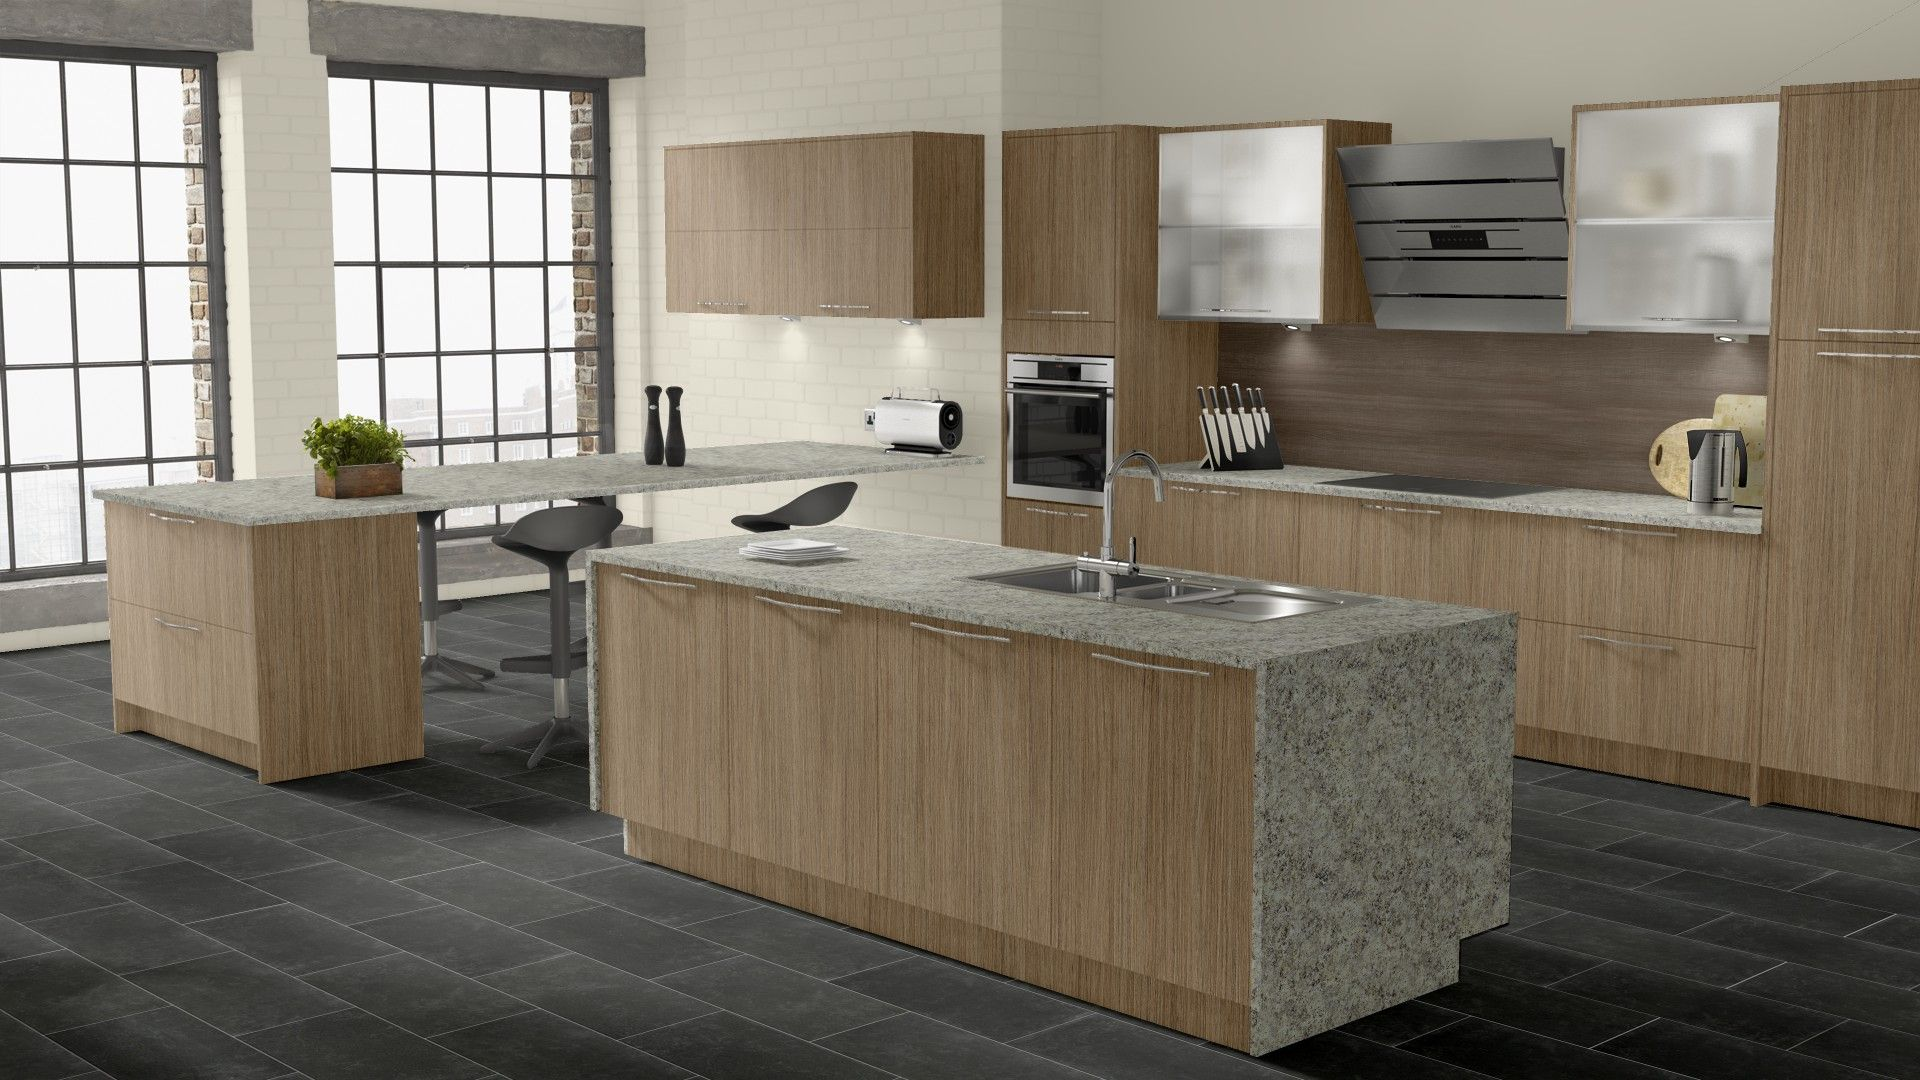 Get Inspired For Your Kitchen Renovation With Wilsonart's Free Fascinating Kitchen Countertop Design Tool Design Ideas